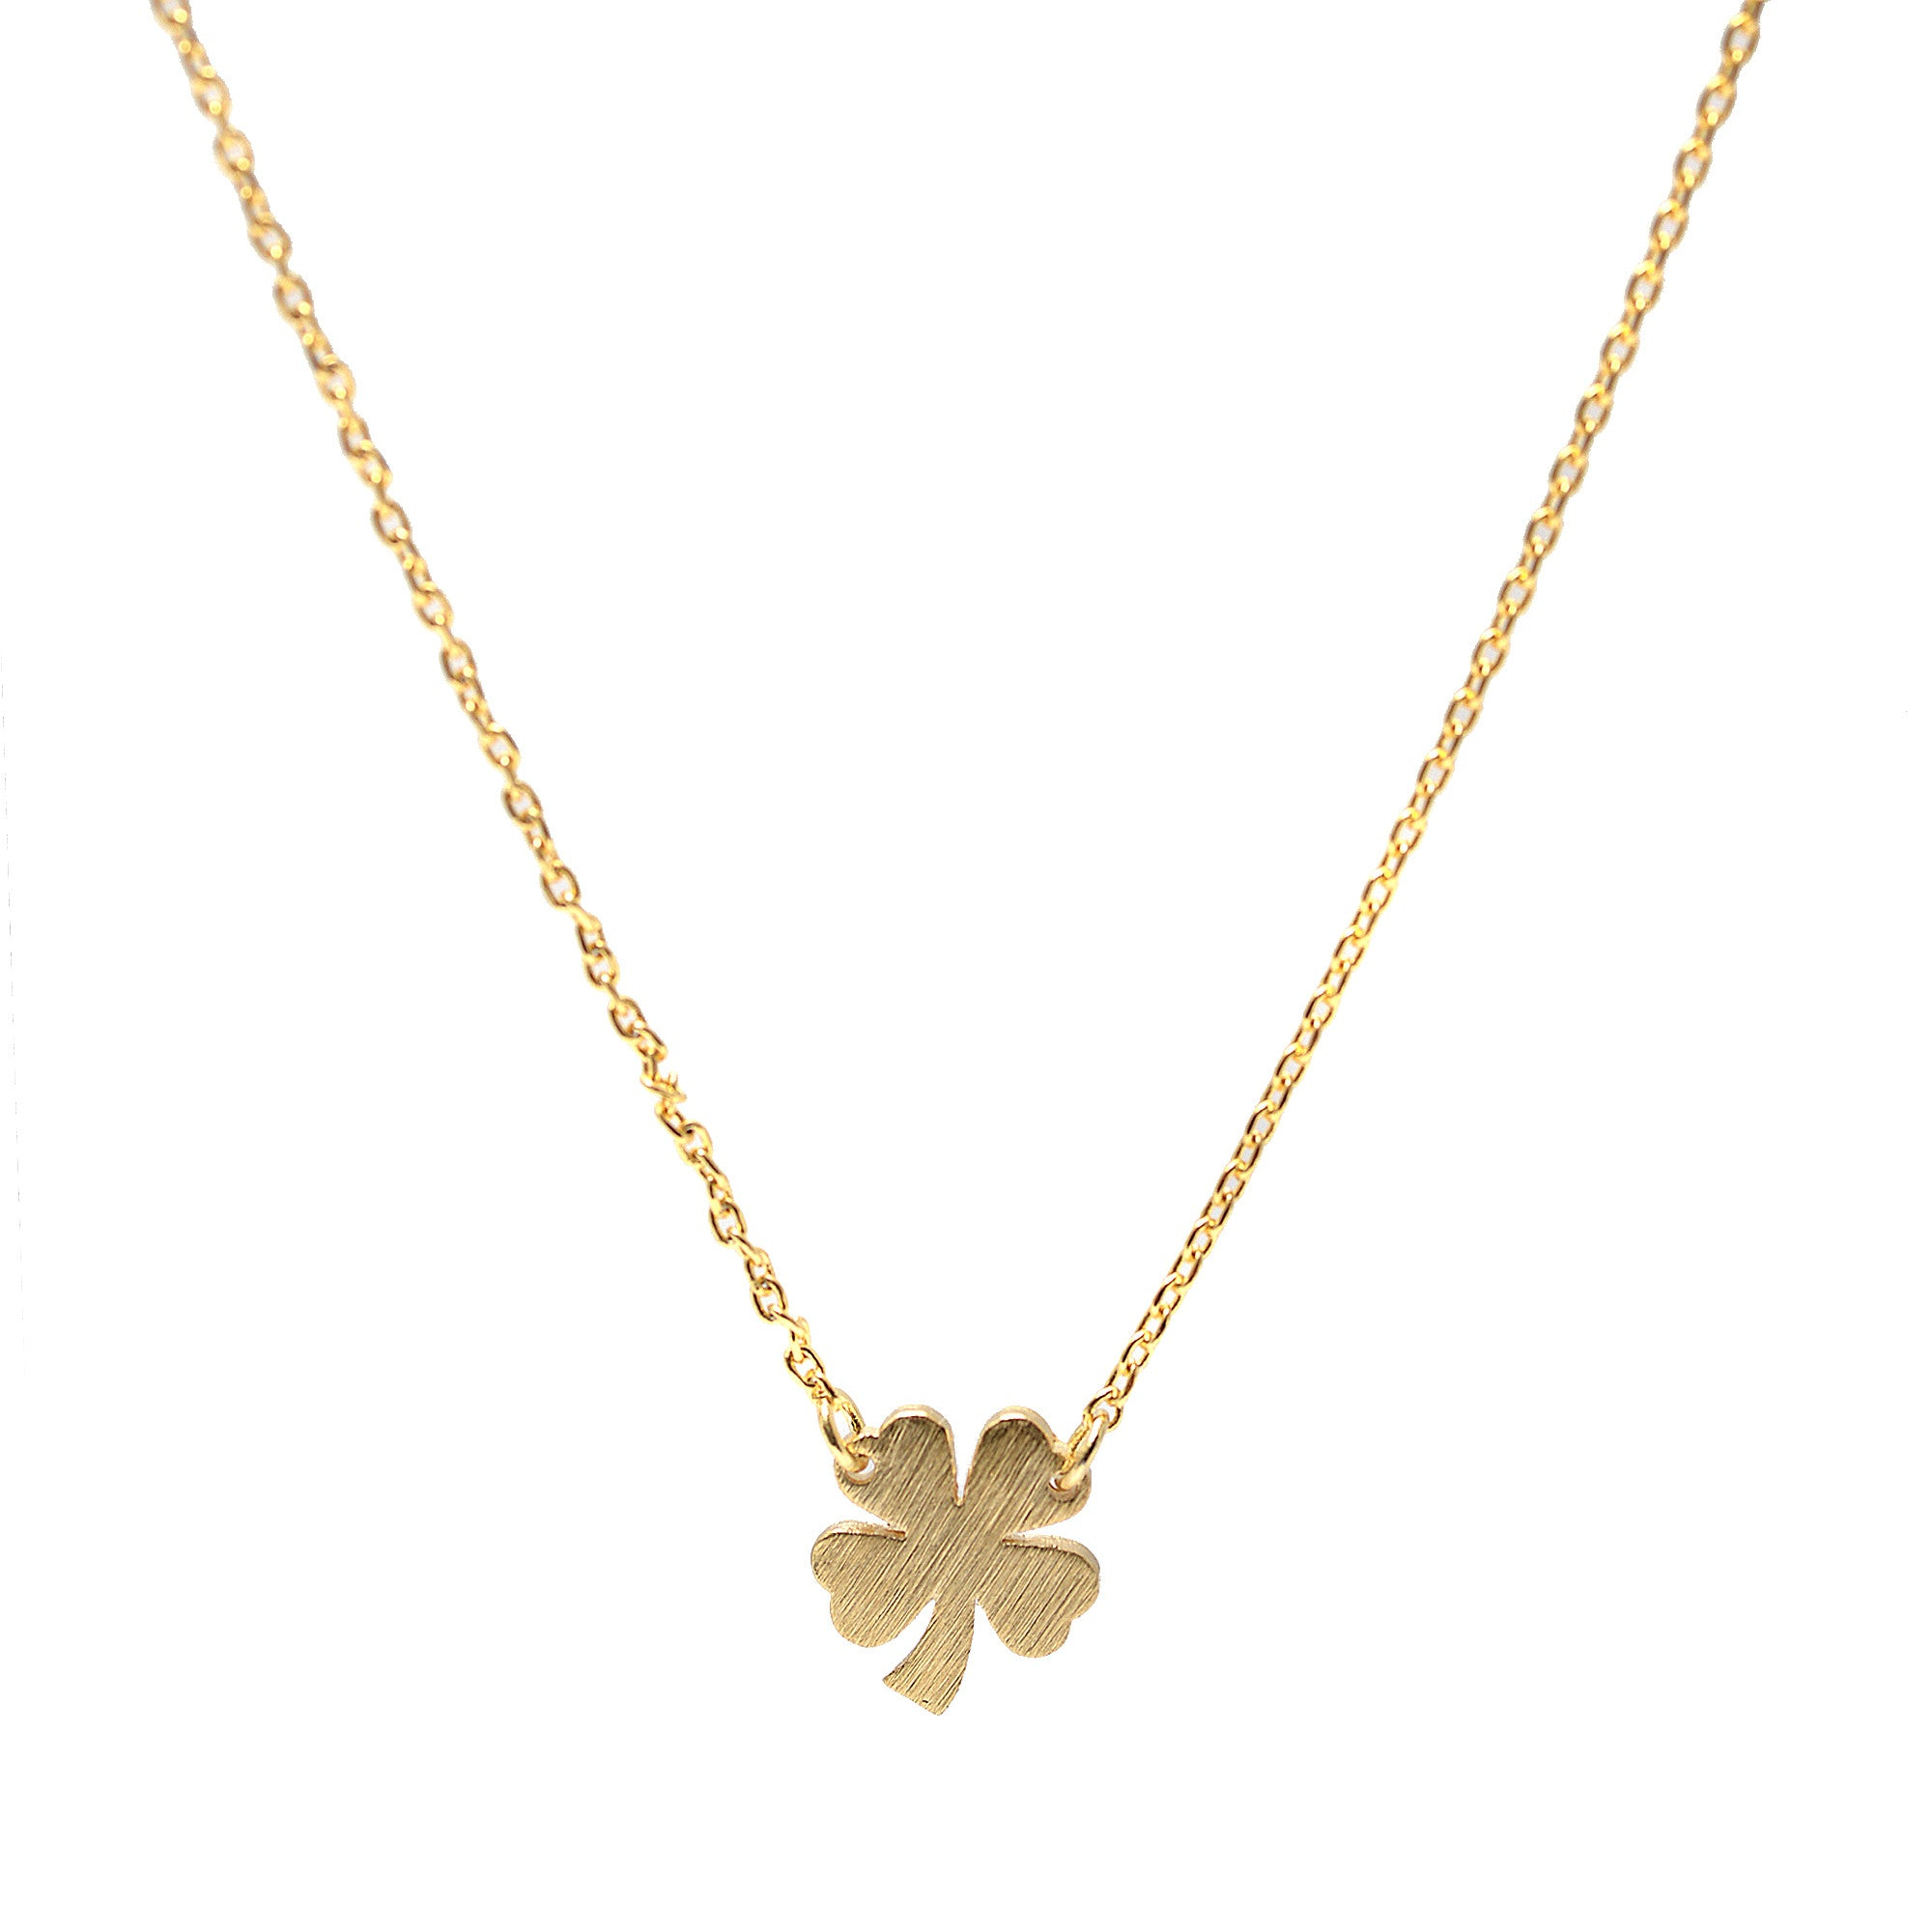 or hersey four herseysilversmiths silver clover by gold product necklace lucky original leaf